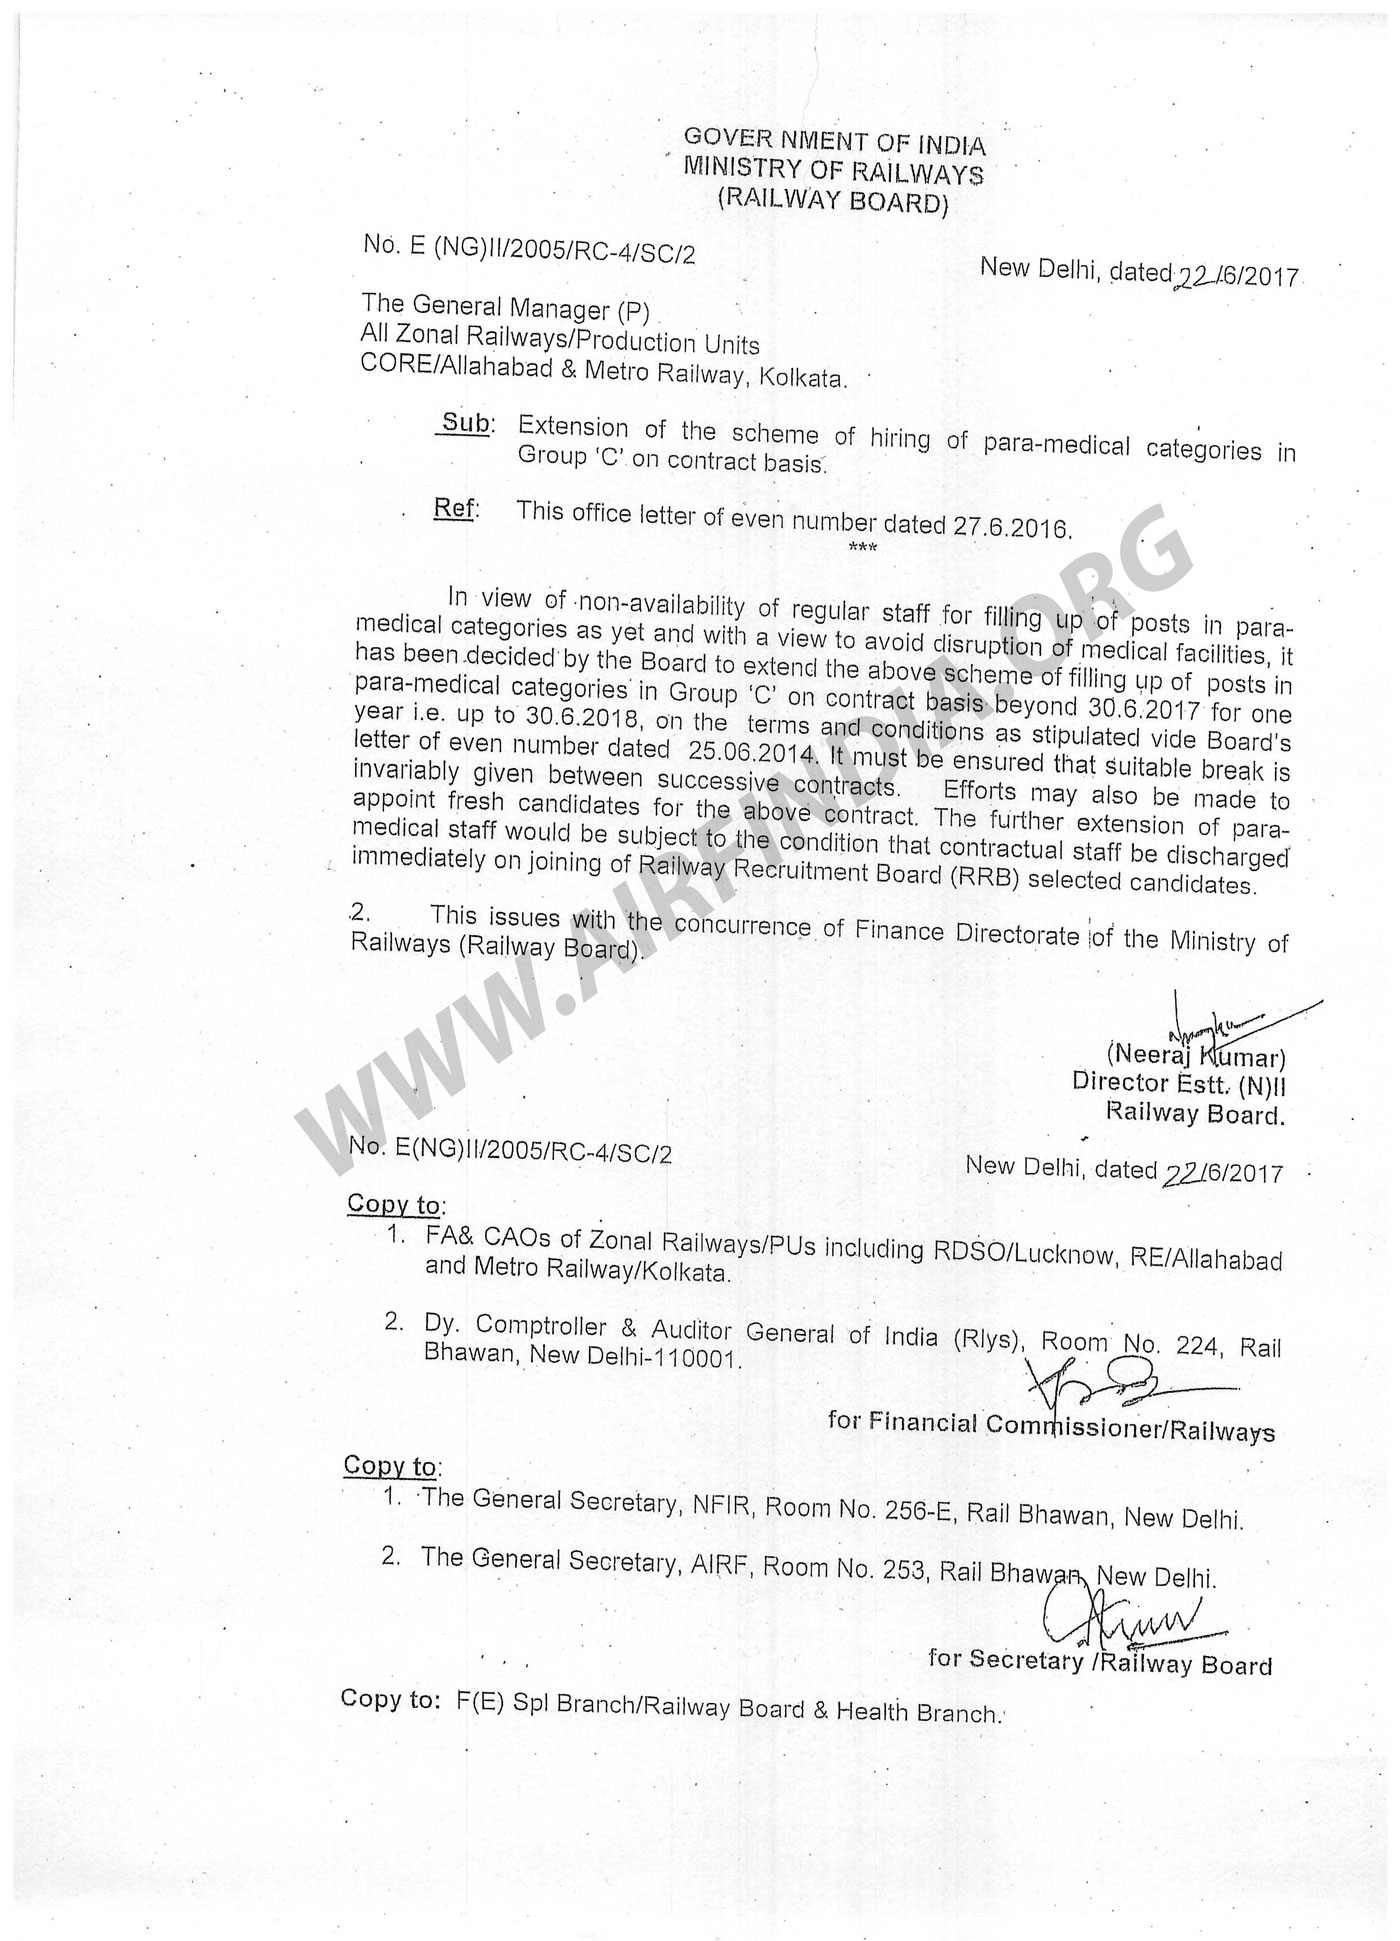 Hiring of Group C category in Paramedical